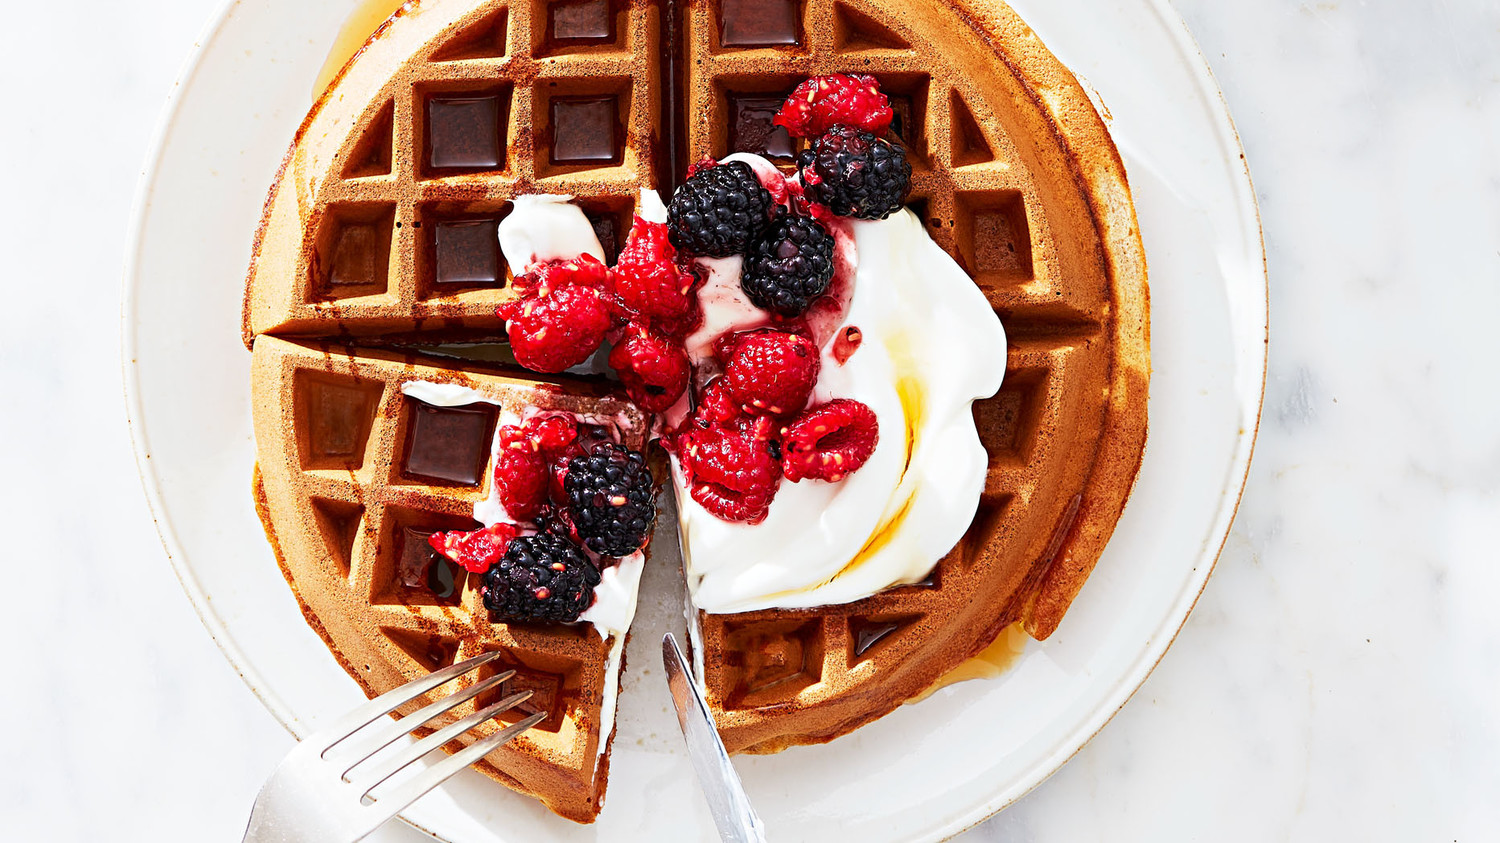 Whole Wheat Waffles With Greek Yogurt And Mixed Berries